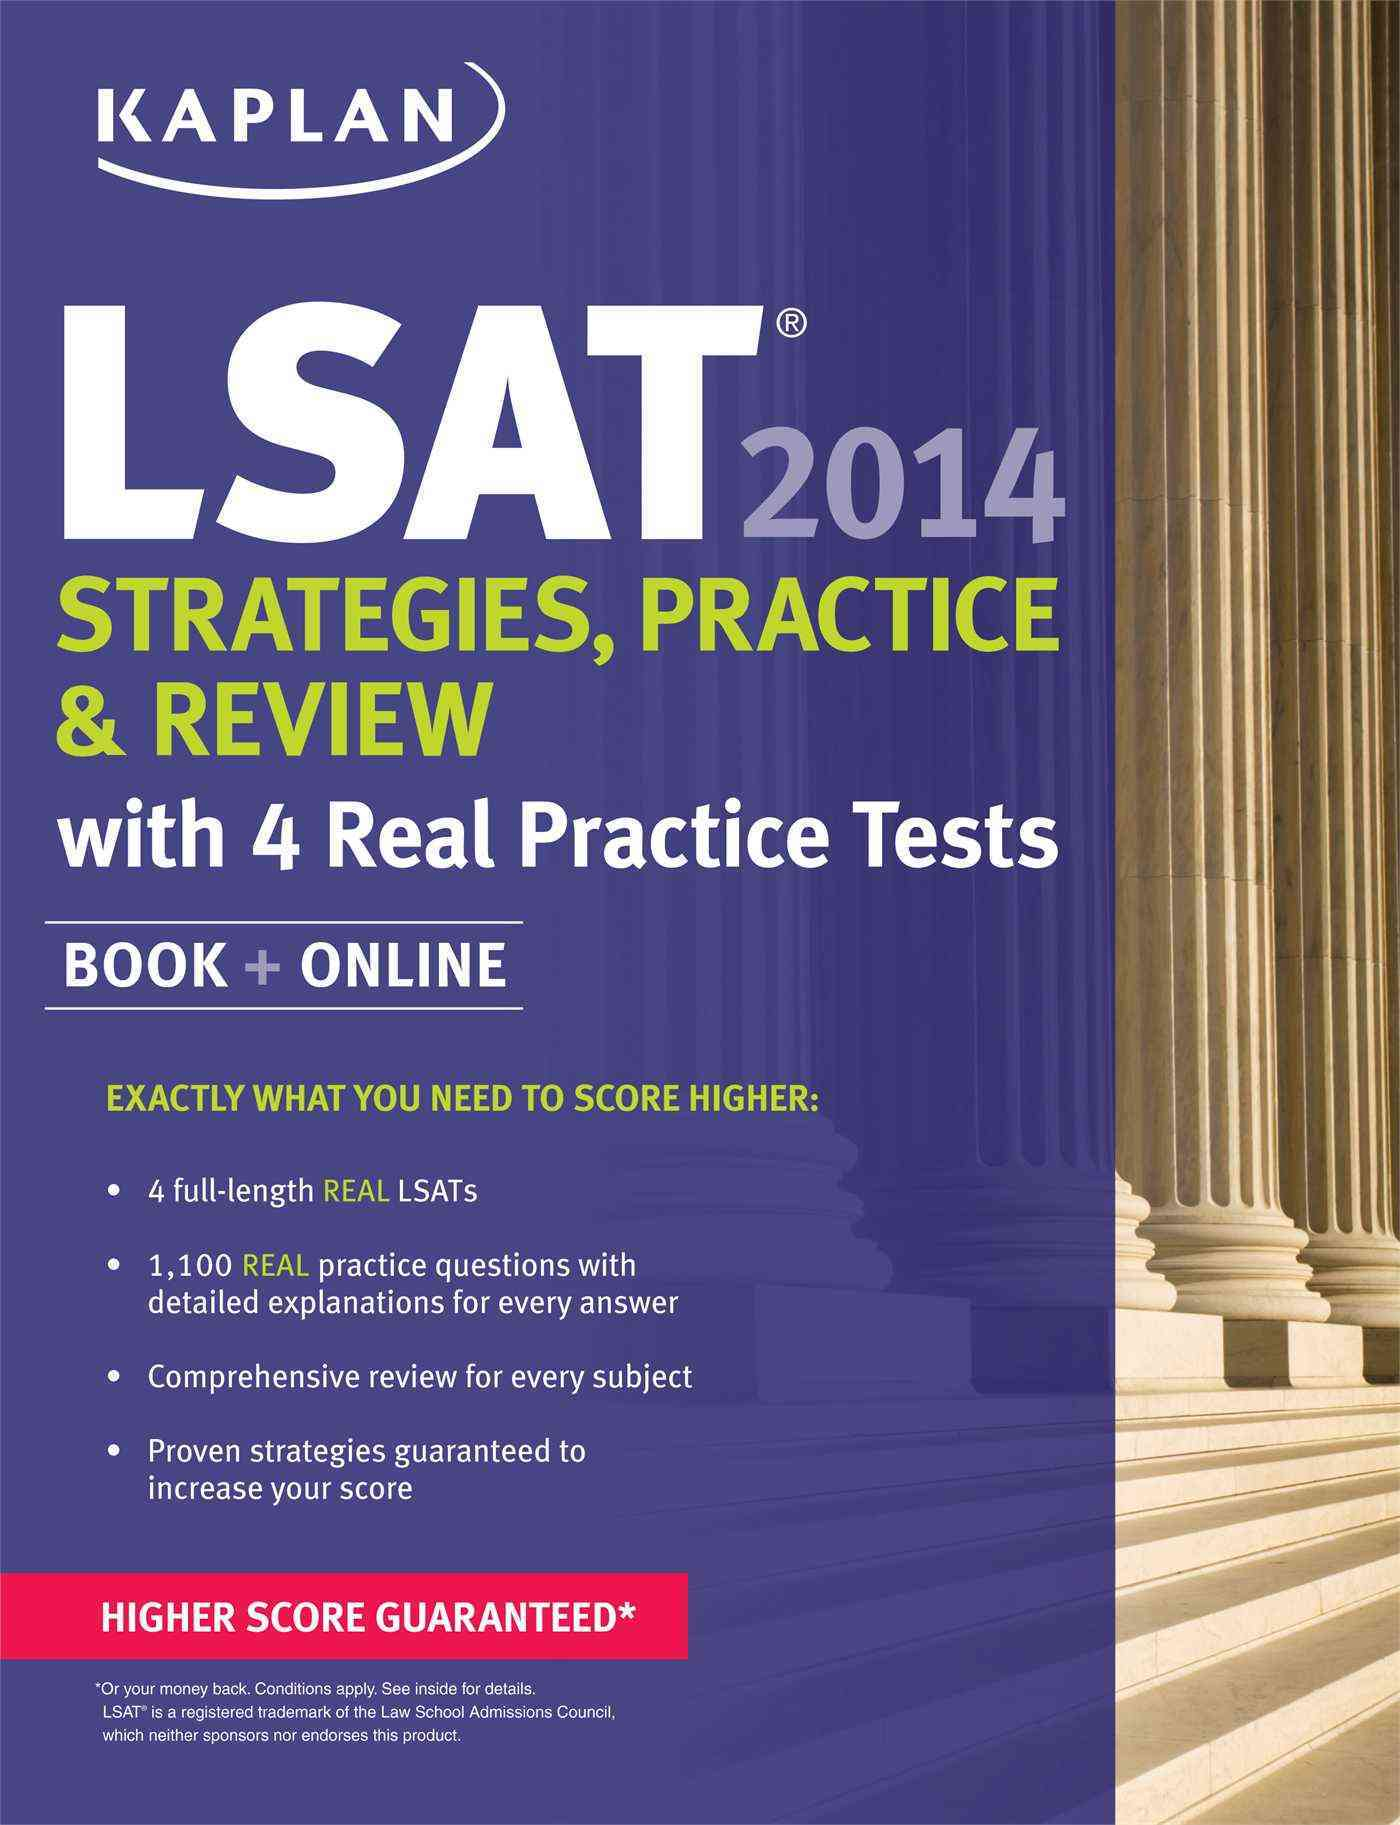 Kaplan LSAT 2014 Strategies, Practice, and Review: With 4 Real Practice Tests